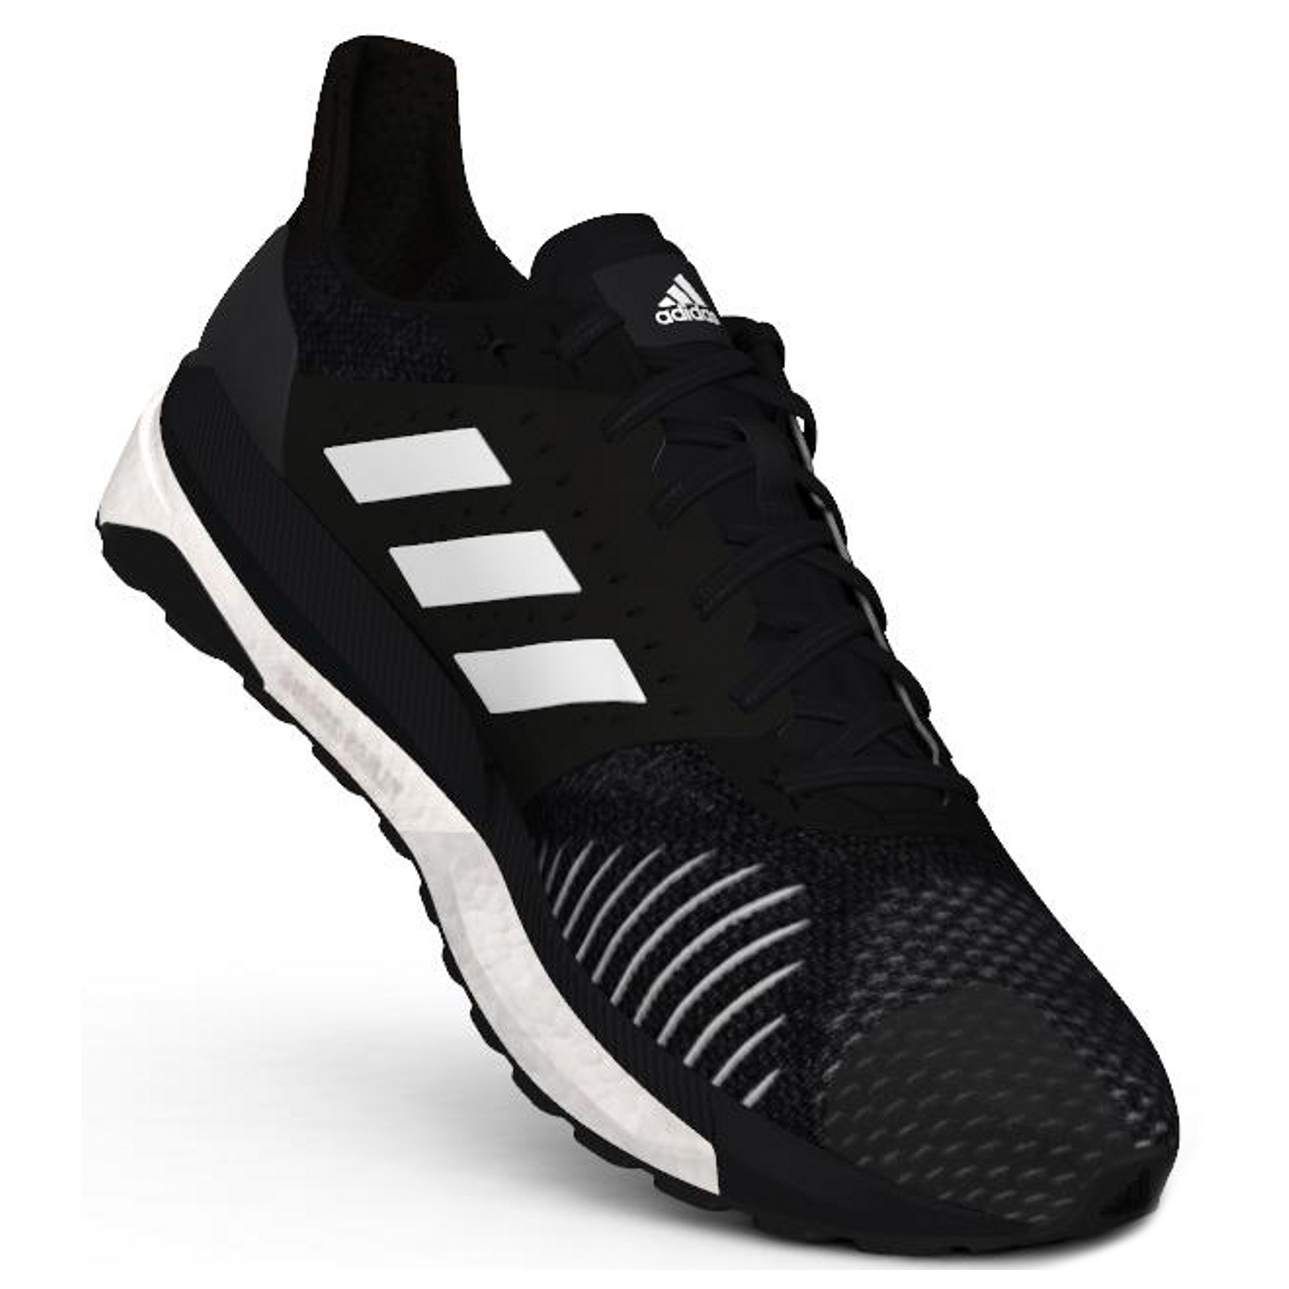 Solar Core Chaussures Black Three7 Running Grey Glide Ftw White 5uk De Adidas St TPkulXZiwO